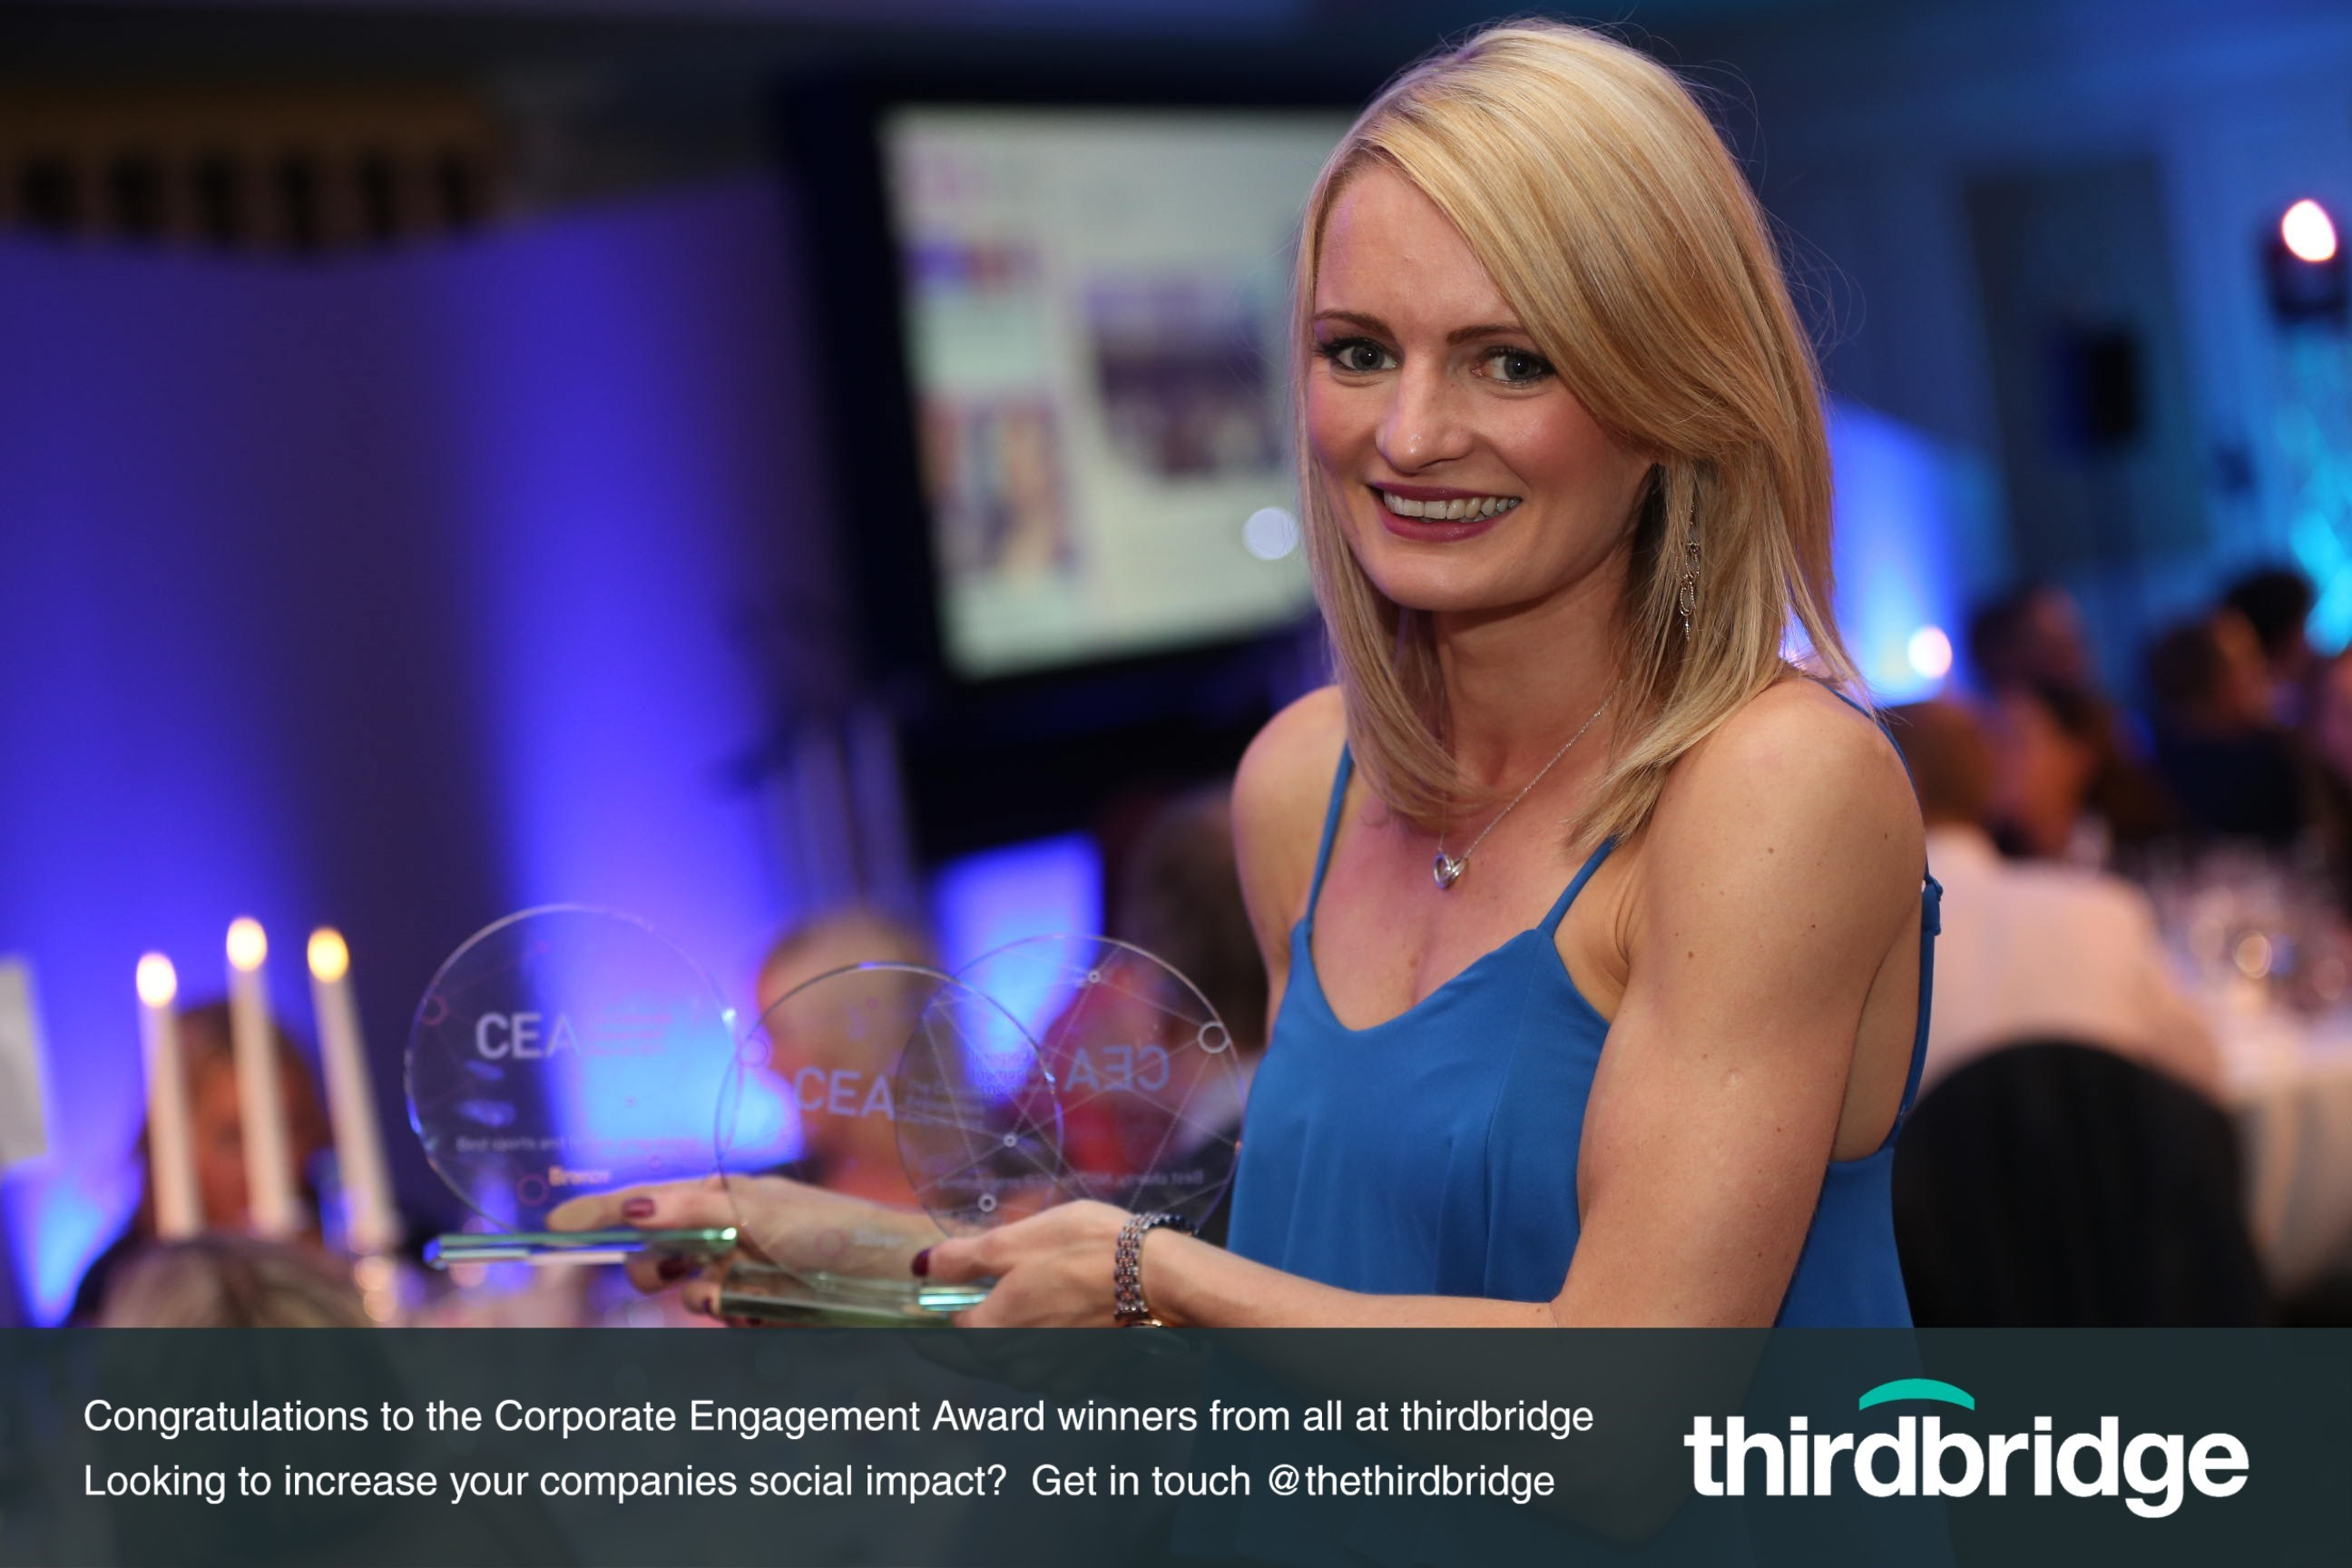 Corporate Engagement award winners 2015